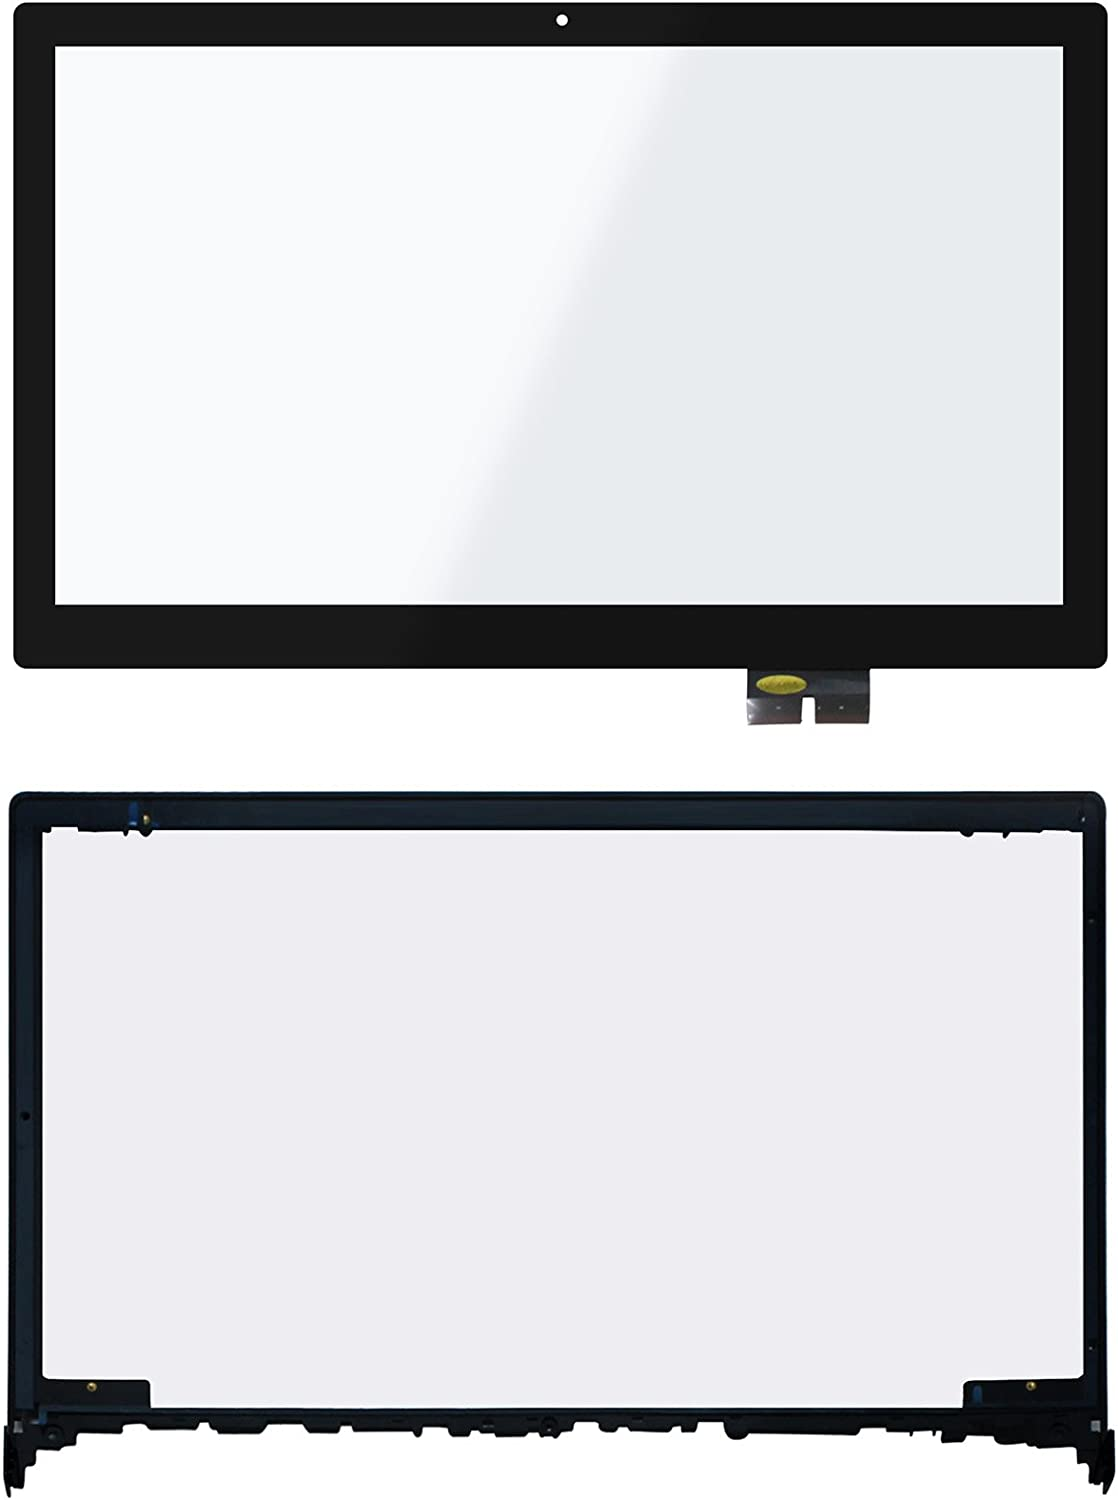 LCDOLED Compatible 15.6 inch Touch Screen Digitizer Front Glass Panel + Bezel Replacement for Lenovo Flex 2 15 15D 59418271 59422158 59422161